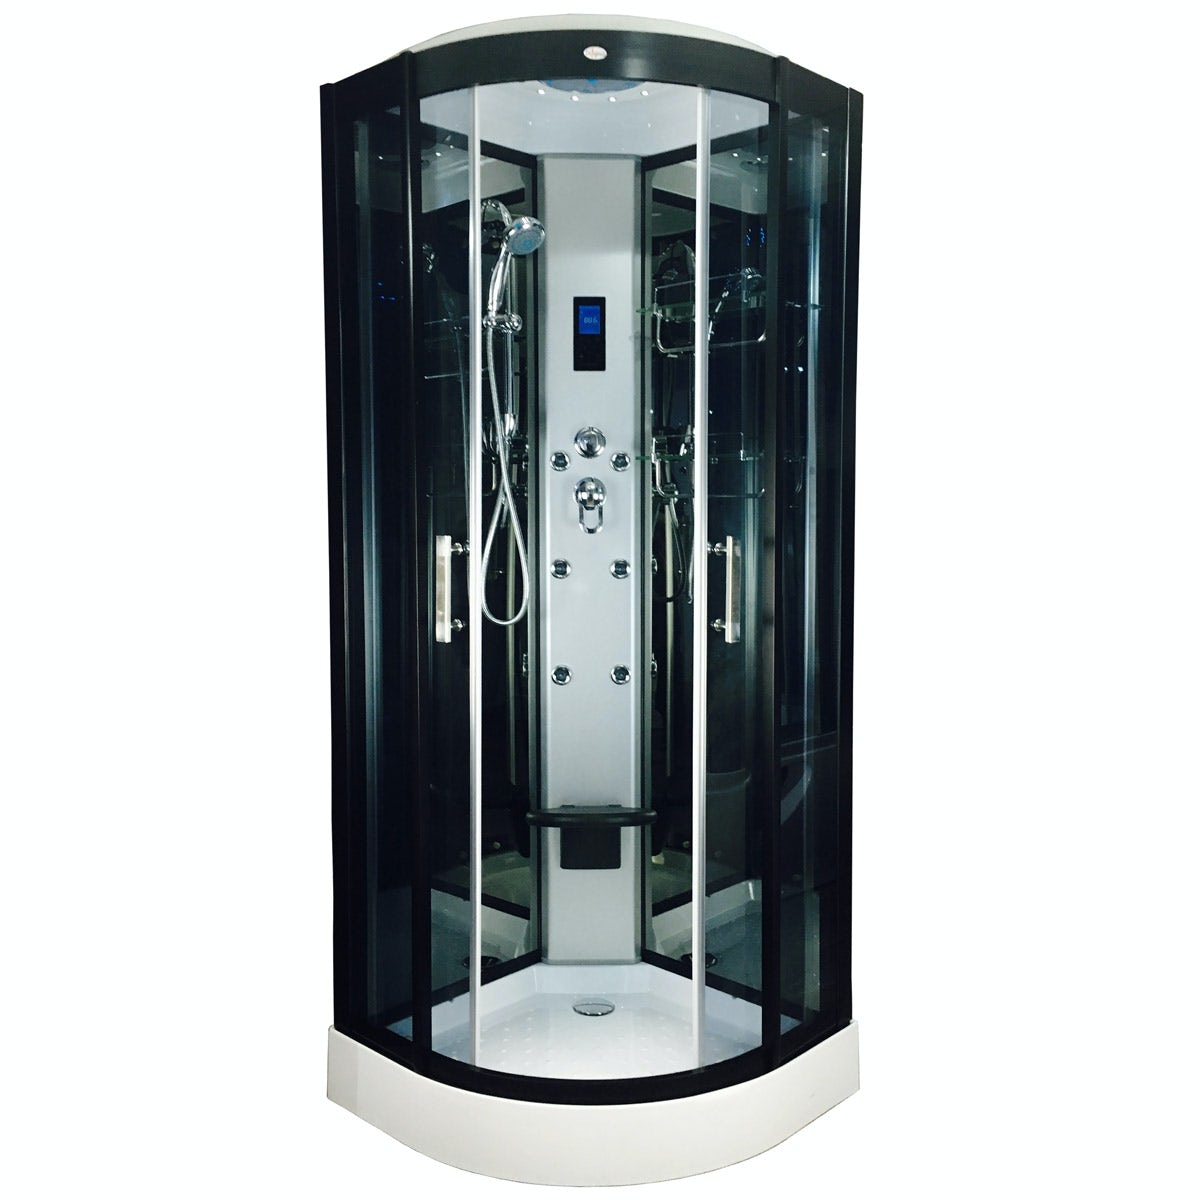 Insignia Quadrant Hydro Massage Shower Cabin 800 X 800